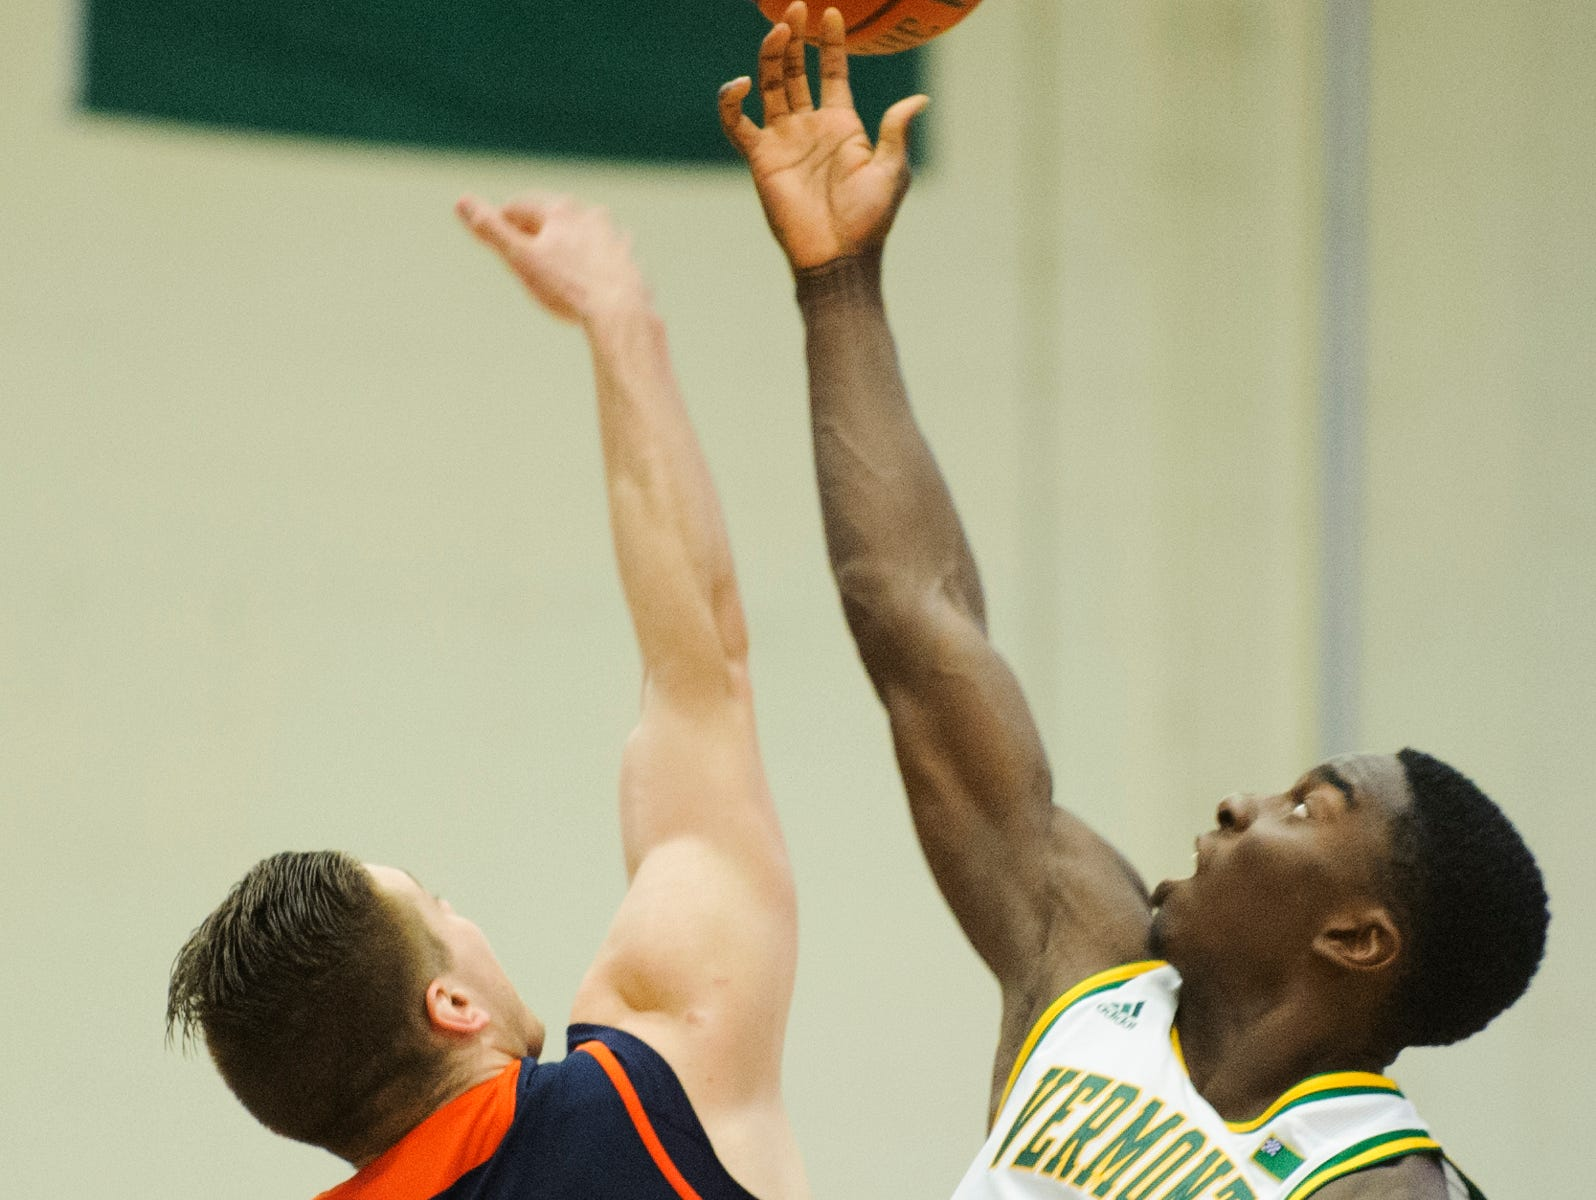 Vermont forward Ra Kpedi (15) and Bucknell's Nate Sestina (4) battle for the opening tip off during the men's basketball game between the Bucknell Bison and the Vermont Catamounts at Patrick Gym on Sunday afternoon November 25, 2018 in Burlington.